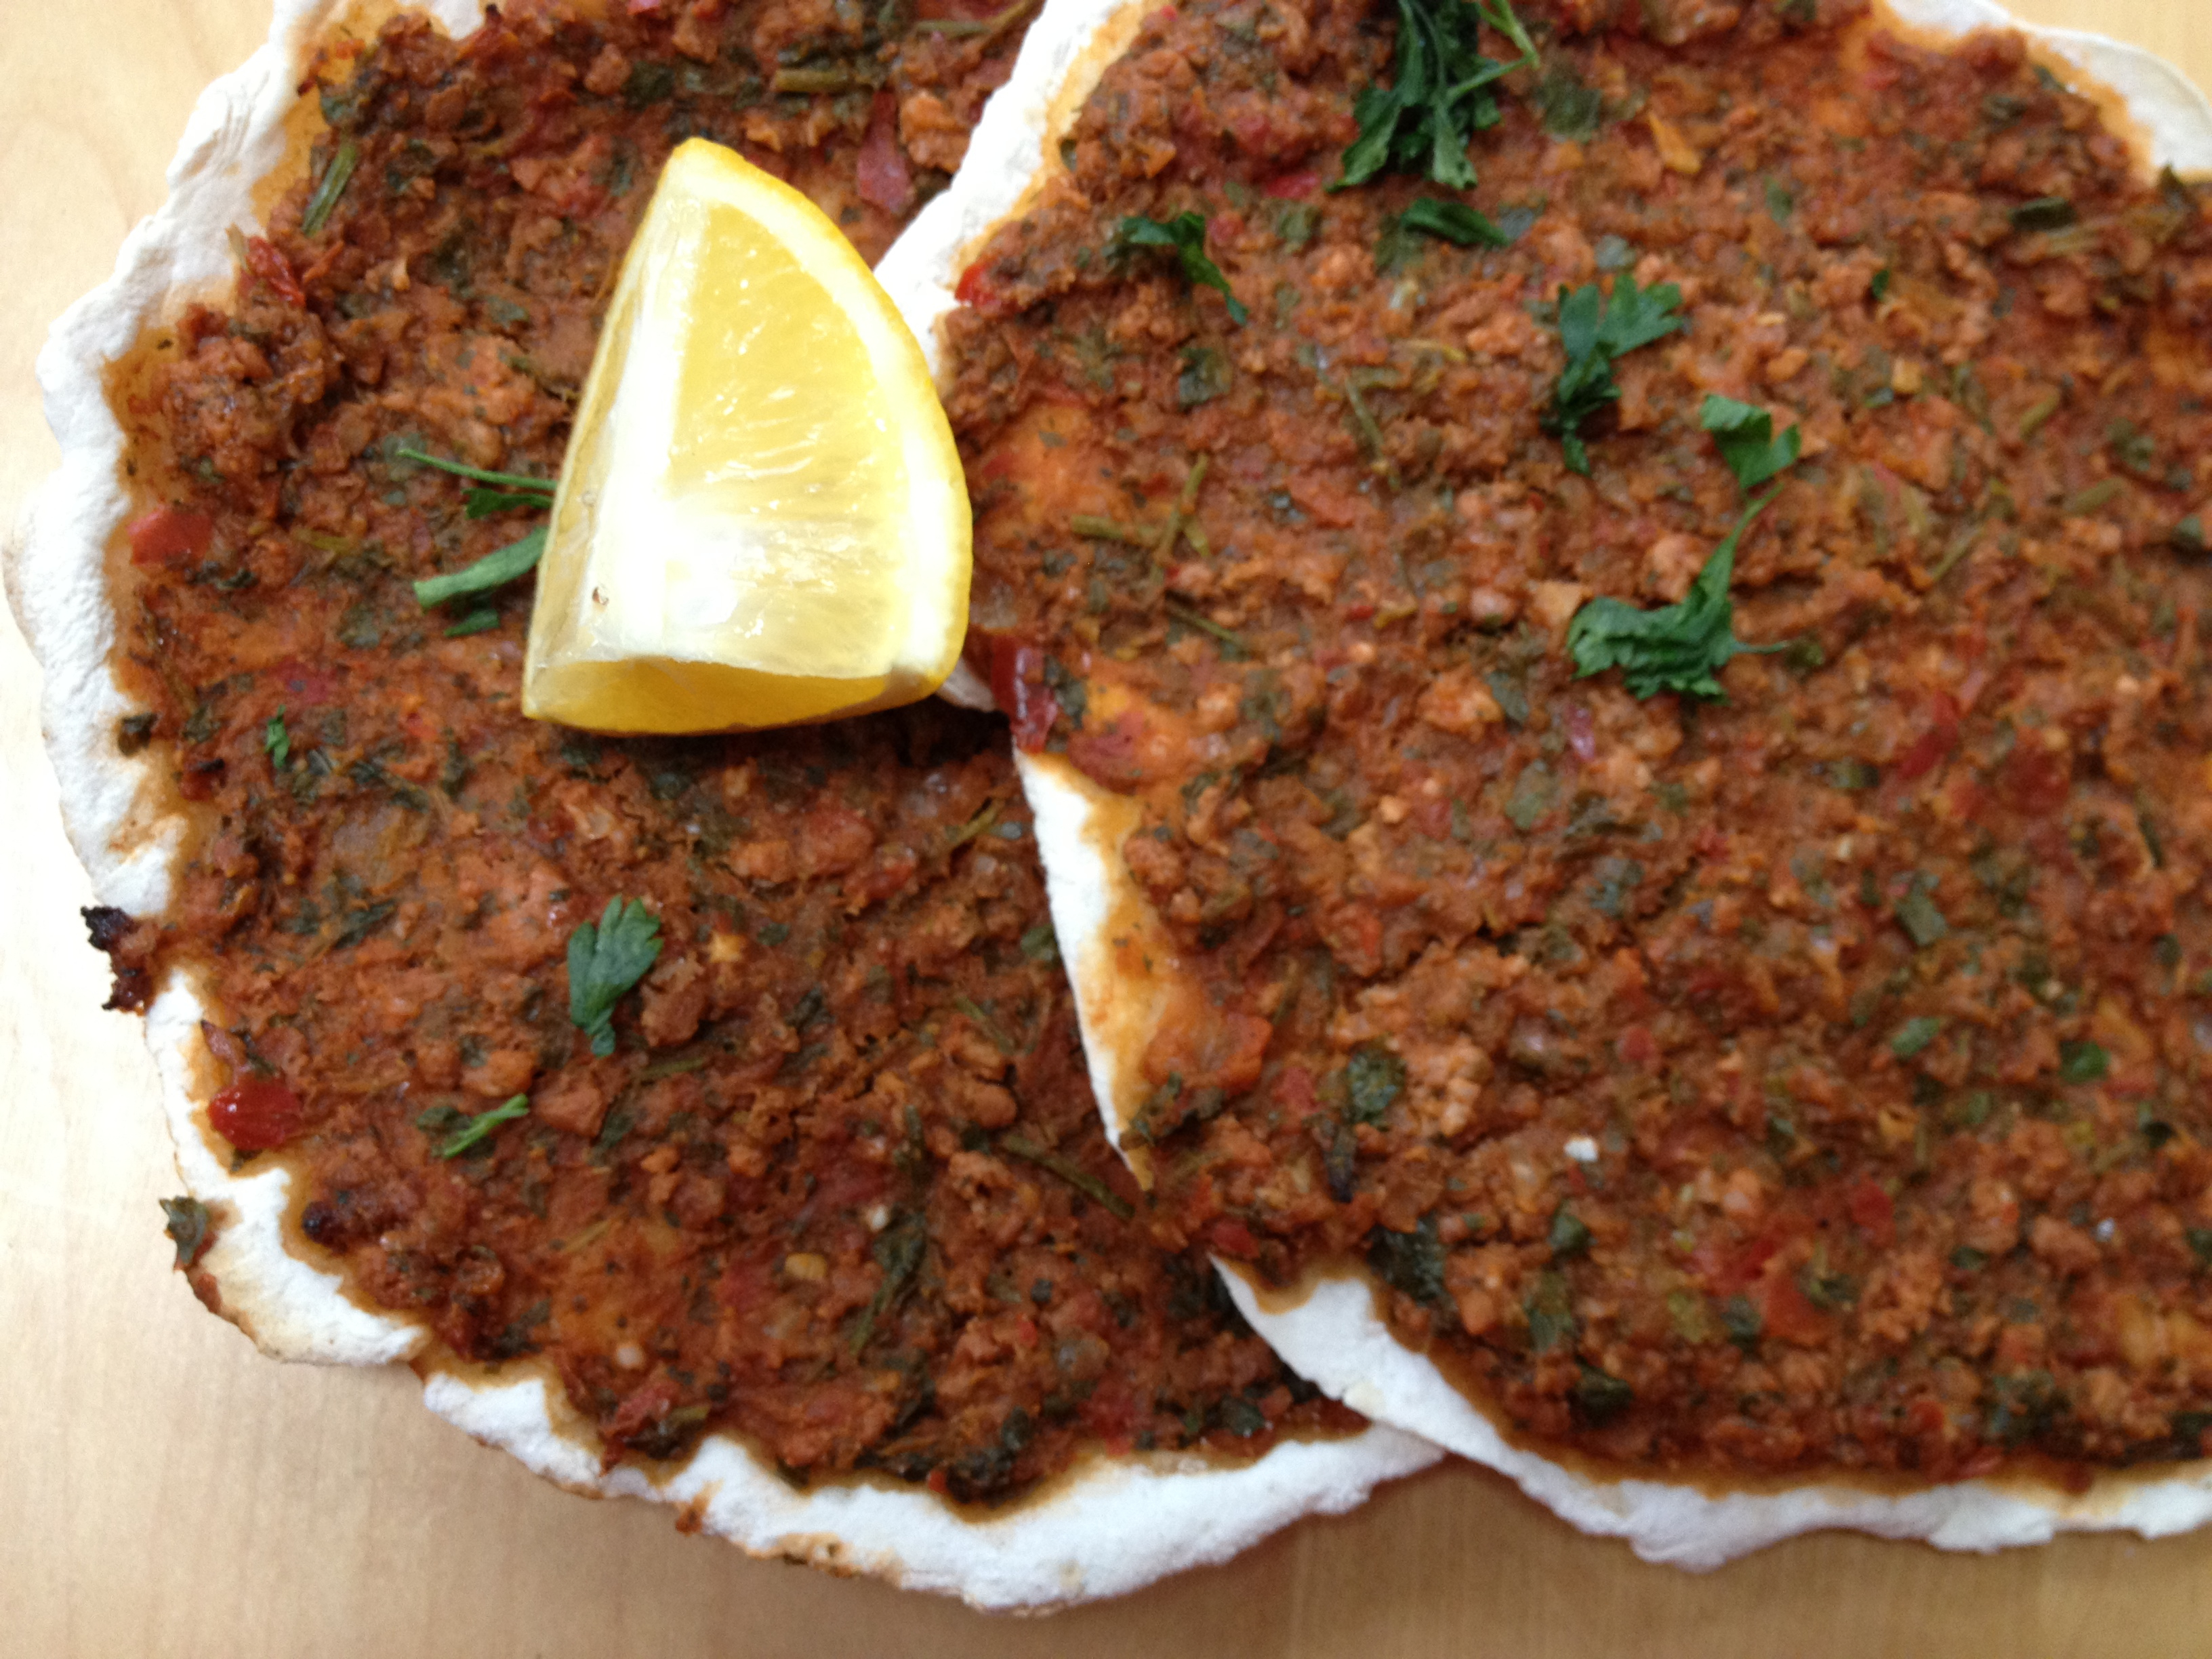 armenian pizza lahmajoun recipe